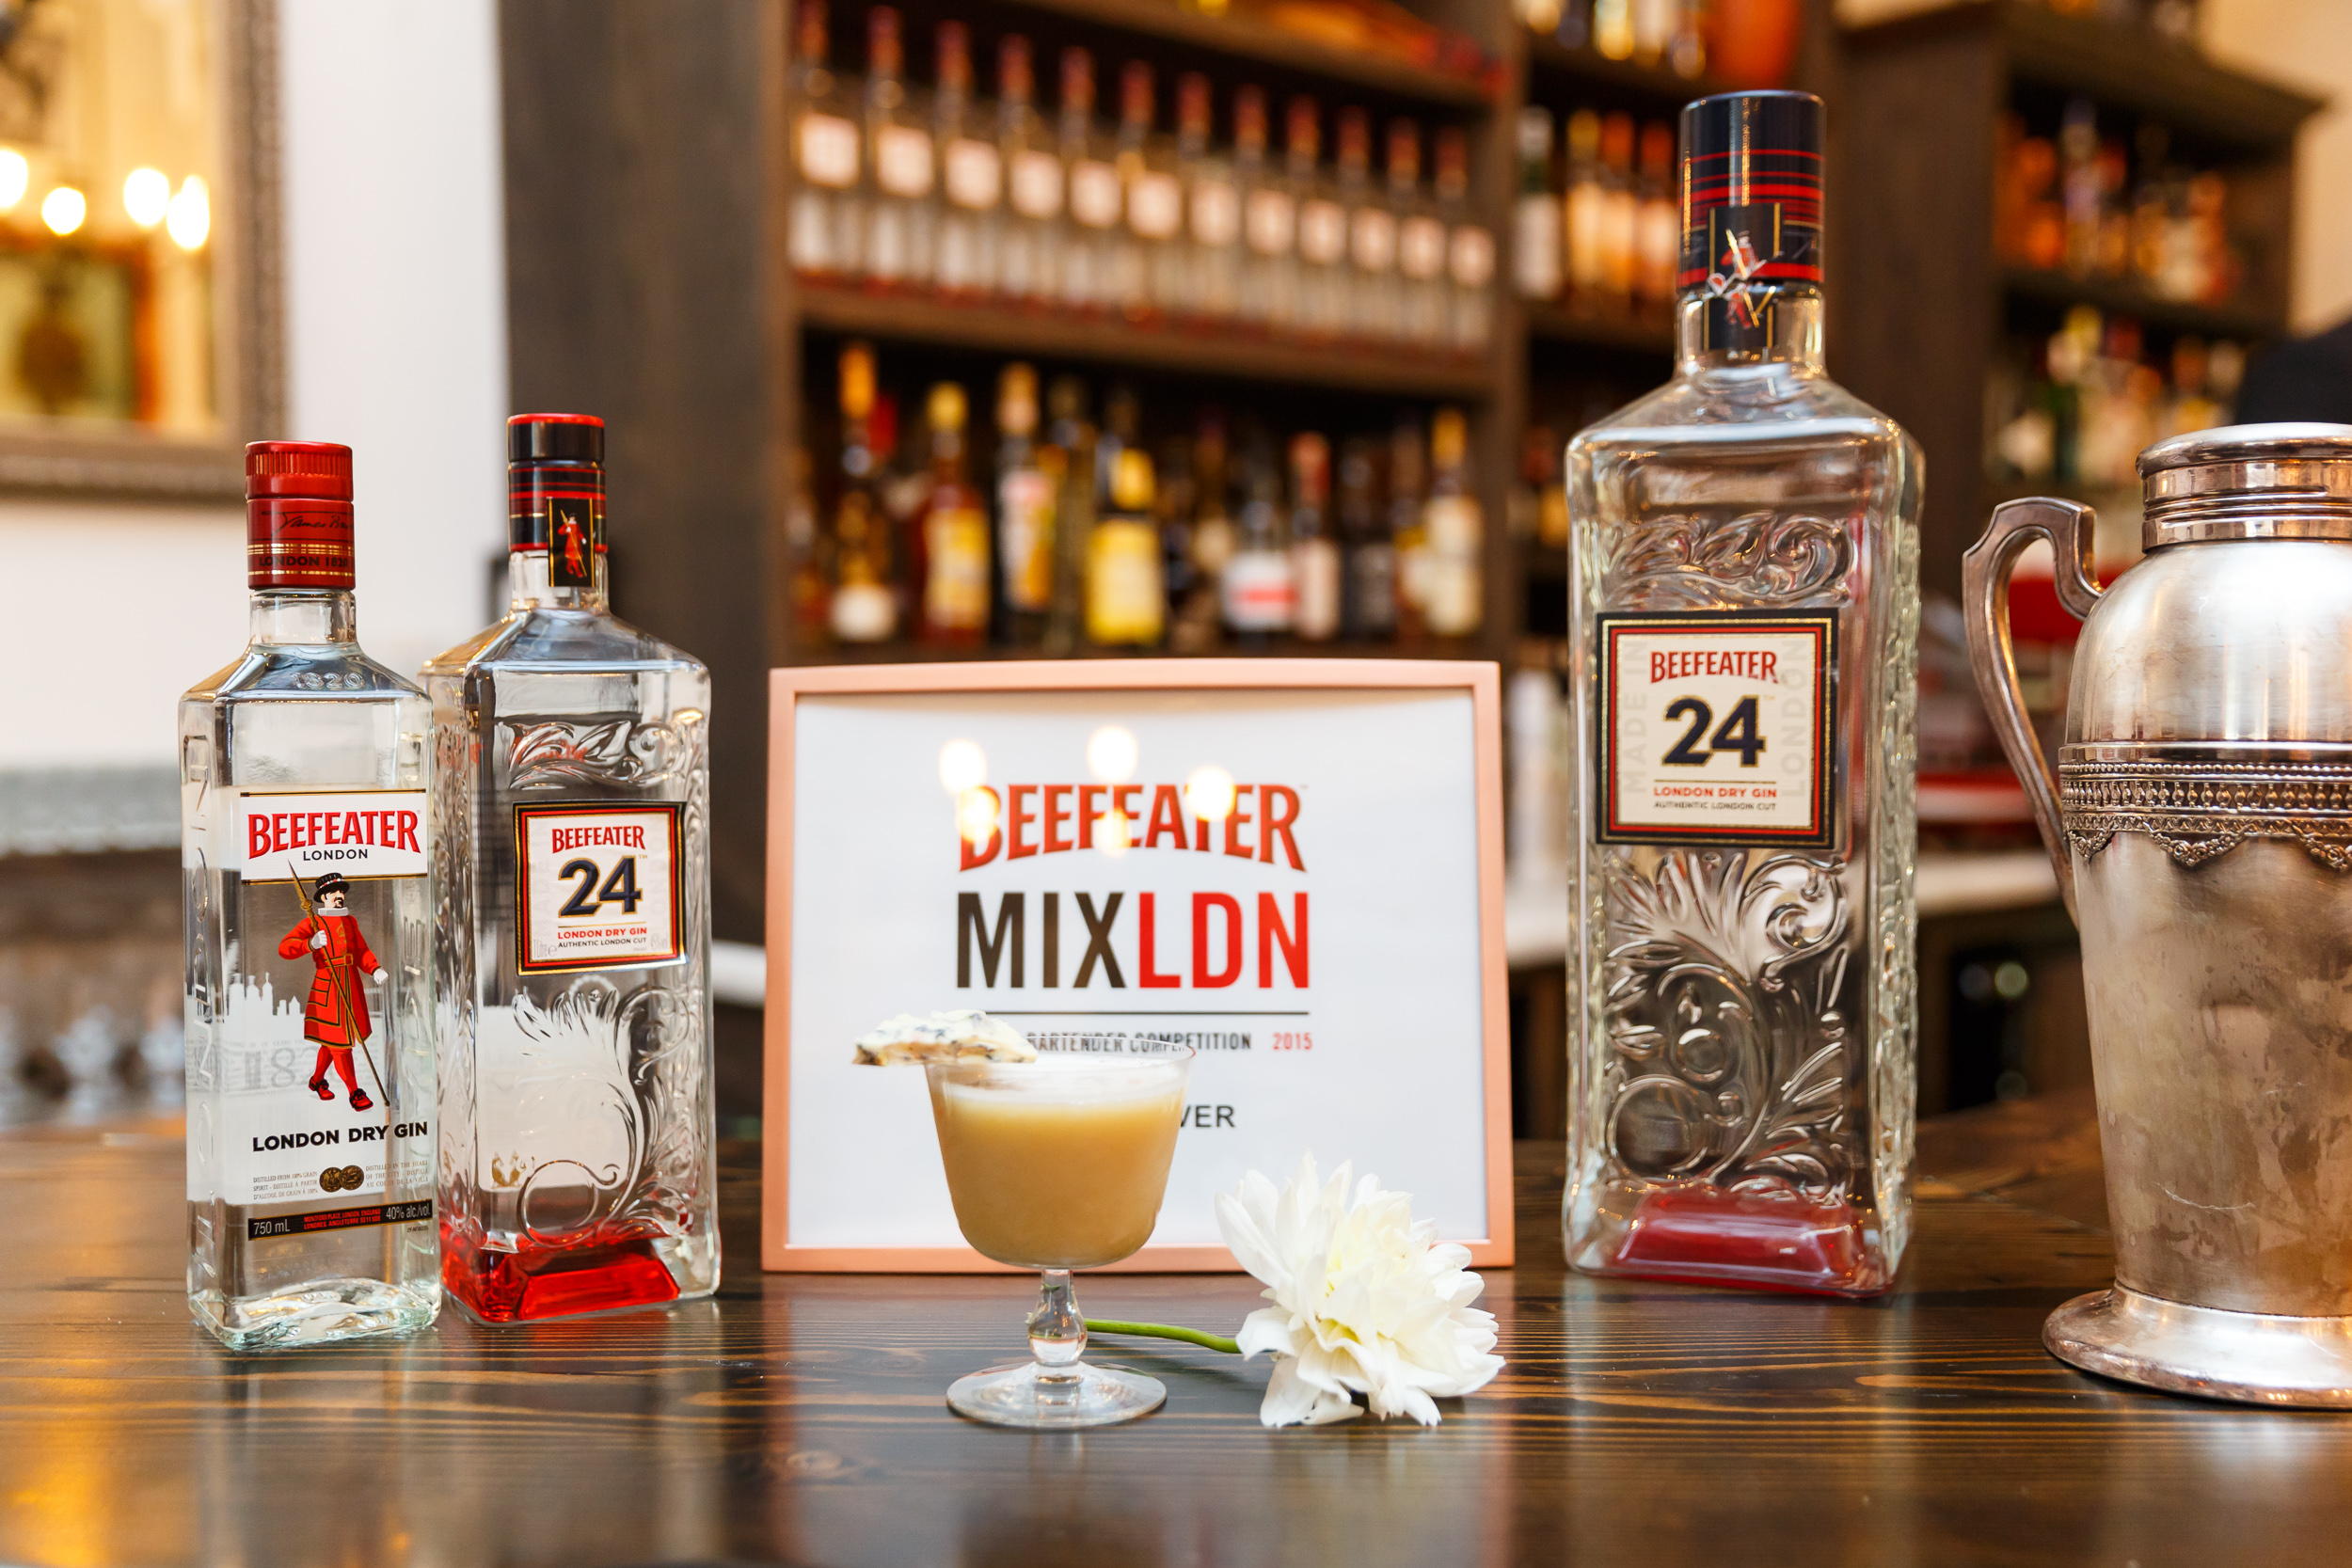 Beefeater-MIXLDN-photo-6.jpg